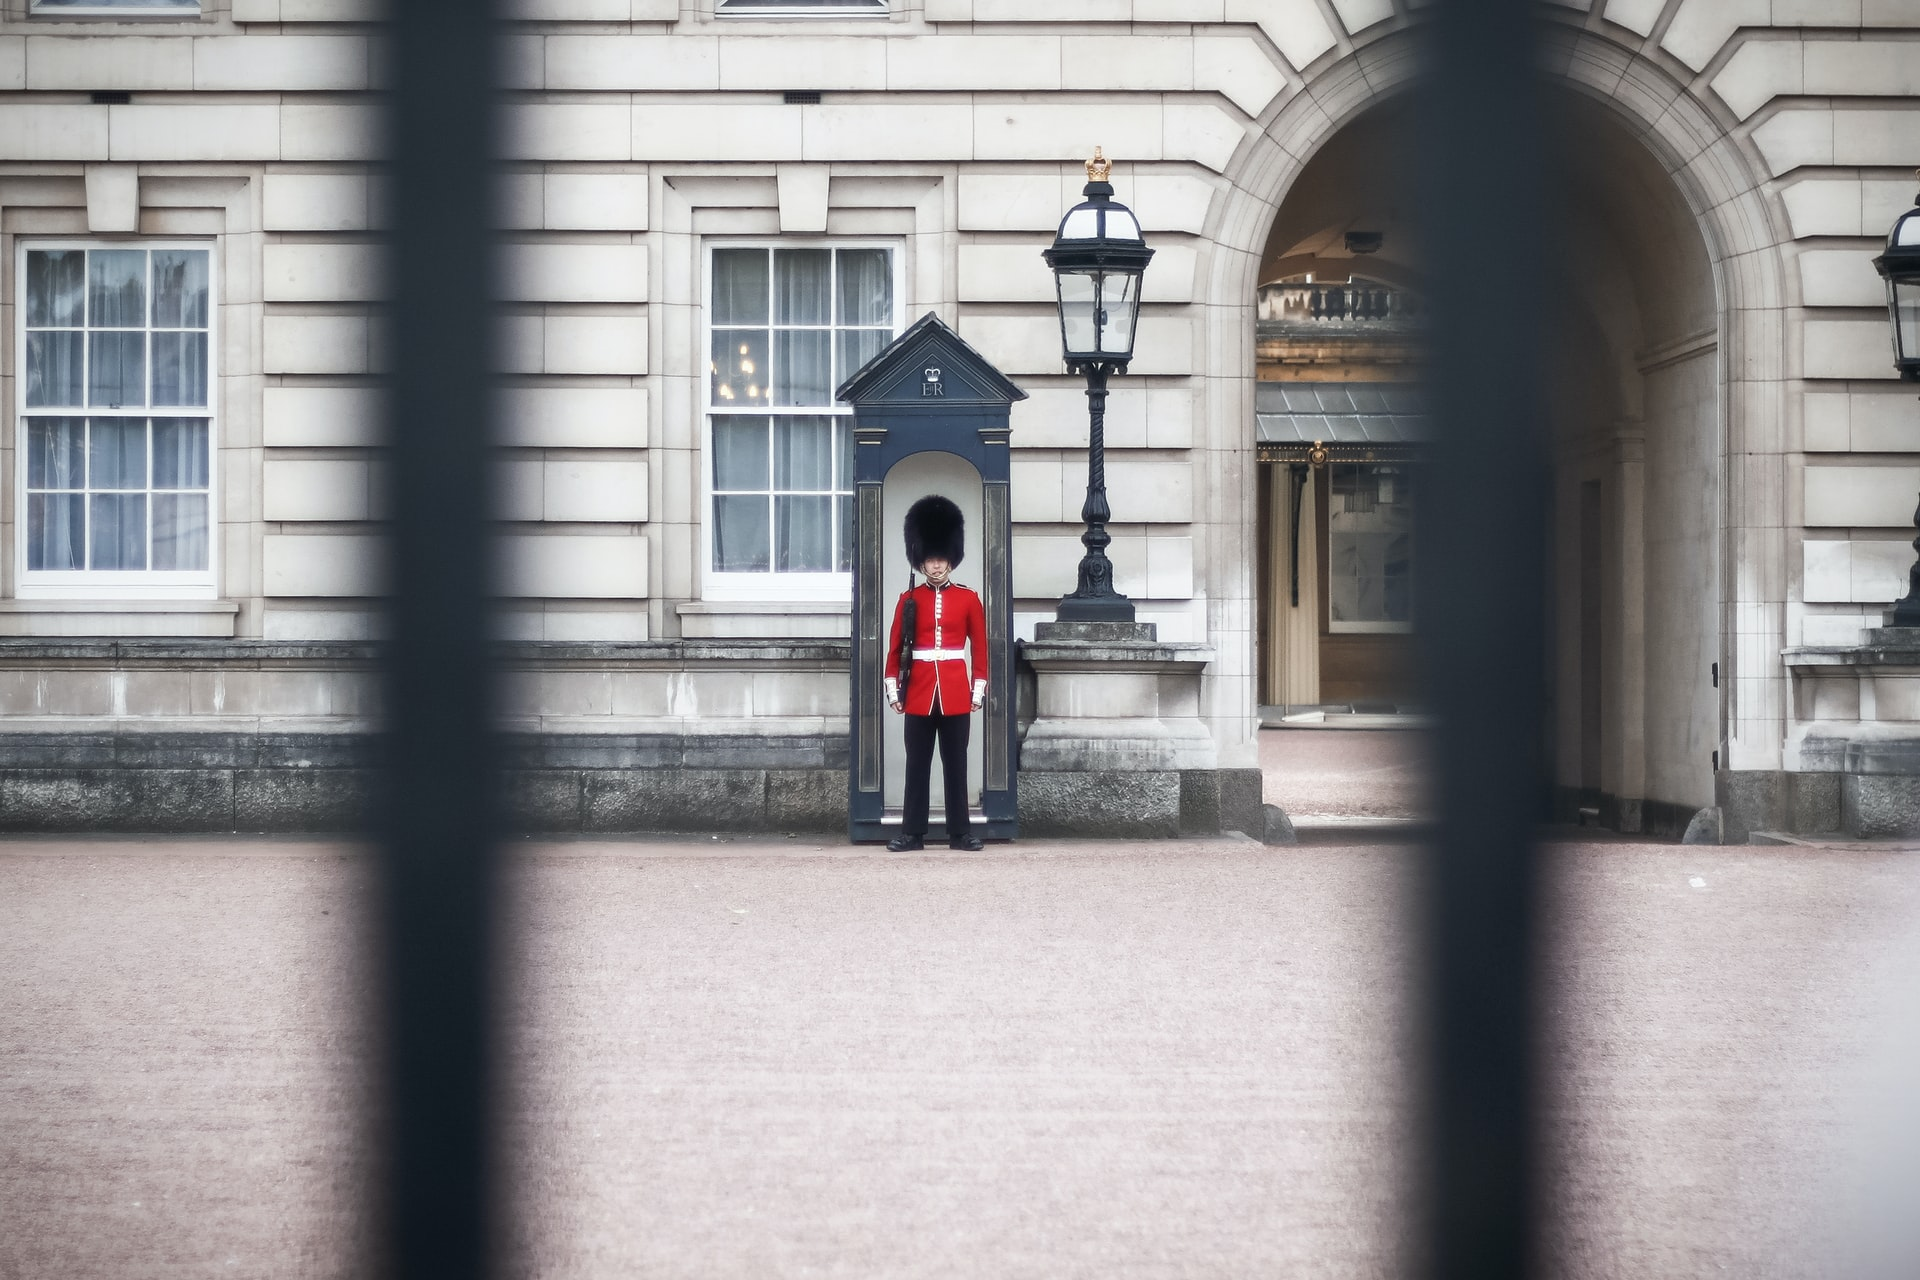 The picture shows a Royal Guard standing at their post, guarding Buckingham Palace.